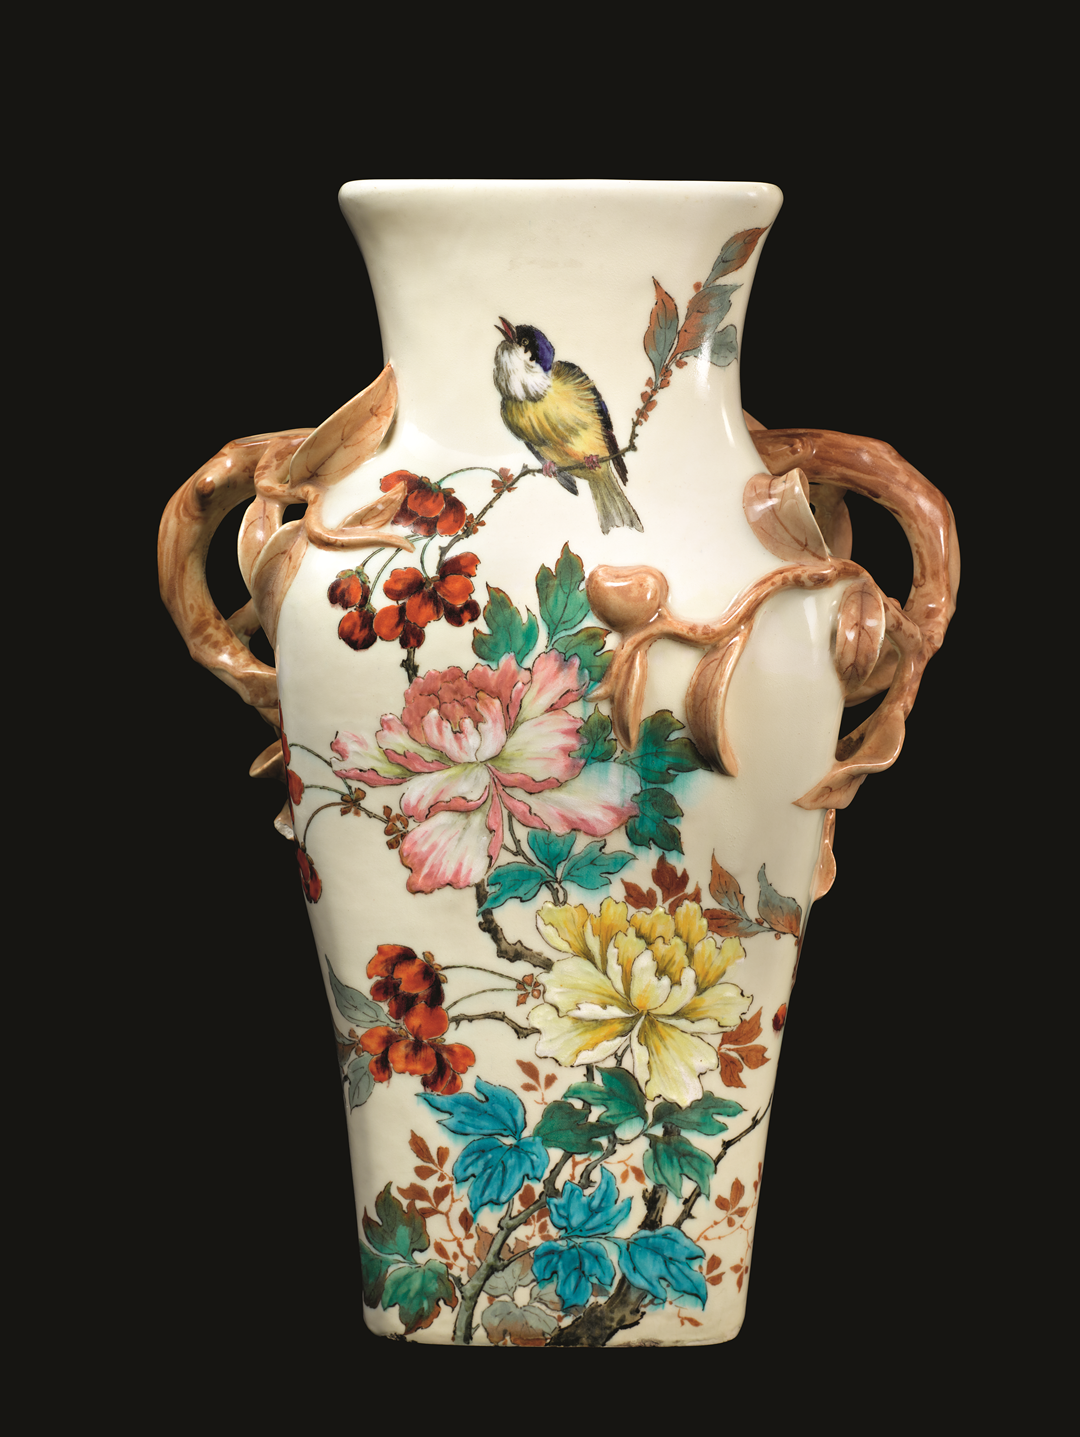 Théodore Deck, ca. 1870–90, earthenware, 19 x 14 x 10 in. (48.3 x 35.6 x 25.4 cm); from 'Vases' chapter.  Photo by Maggie Nimkin assisted by Erica Martone